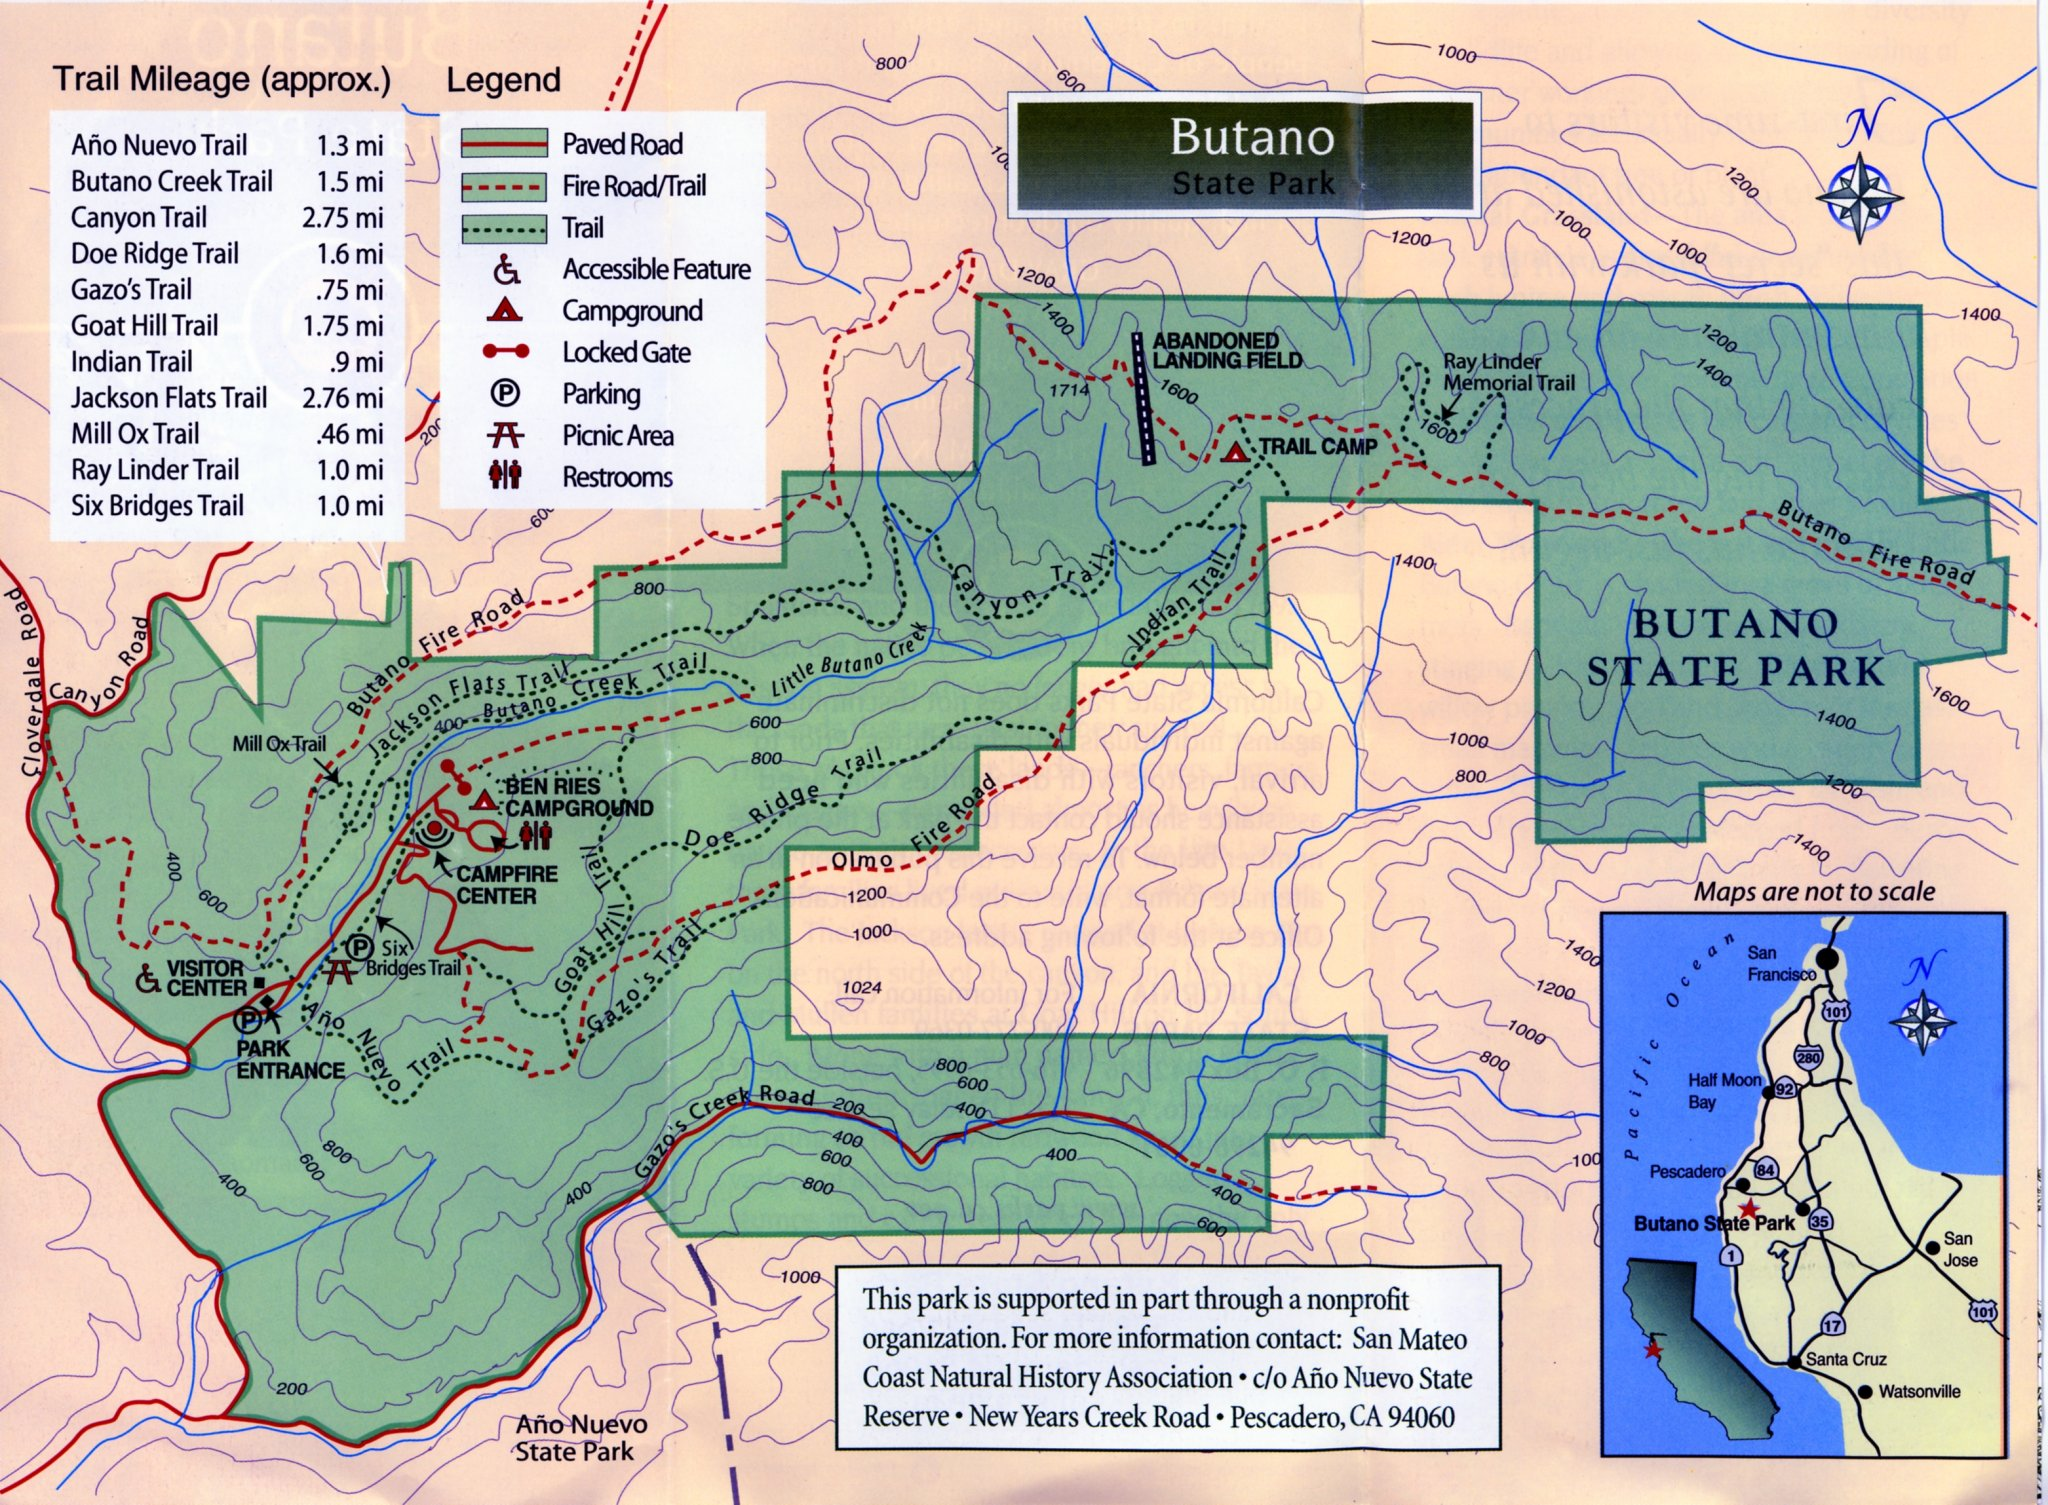 Butano State Park Trail Map